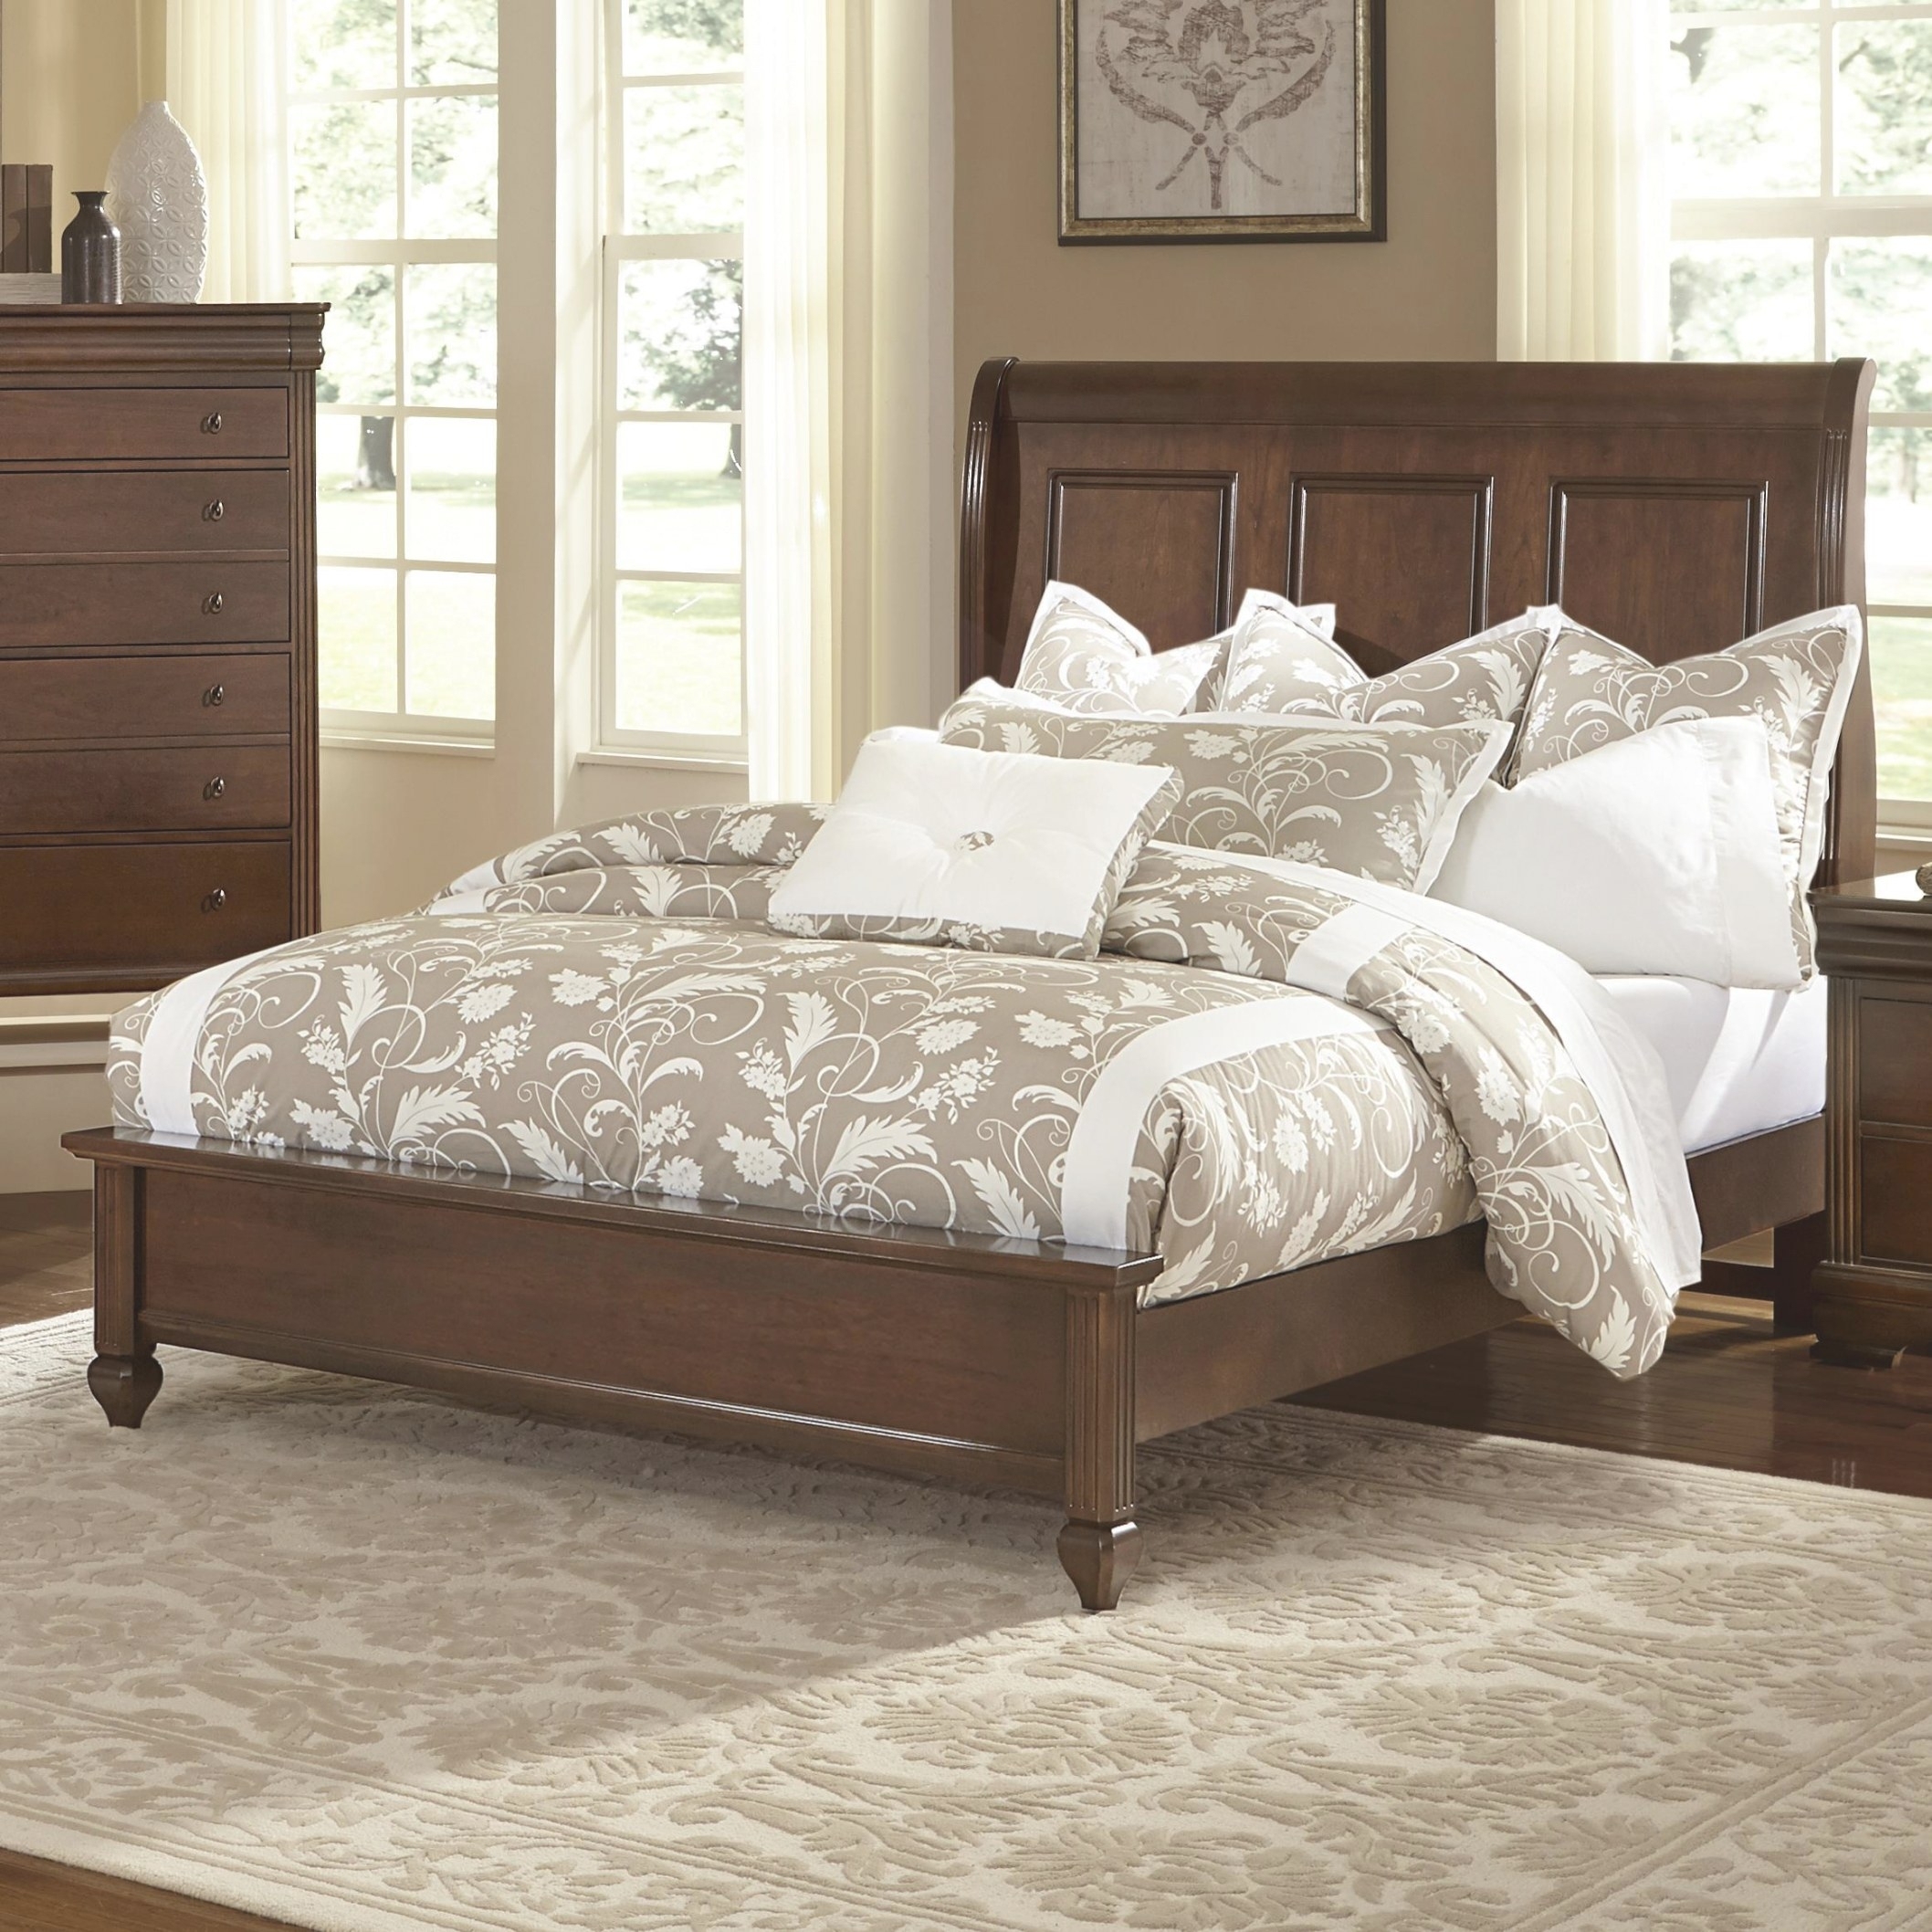 Vaughan Bassett French Market Queen Bed W/ Sleigh pertaining to Low Profile Bunk Beds